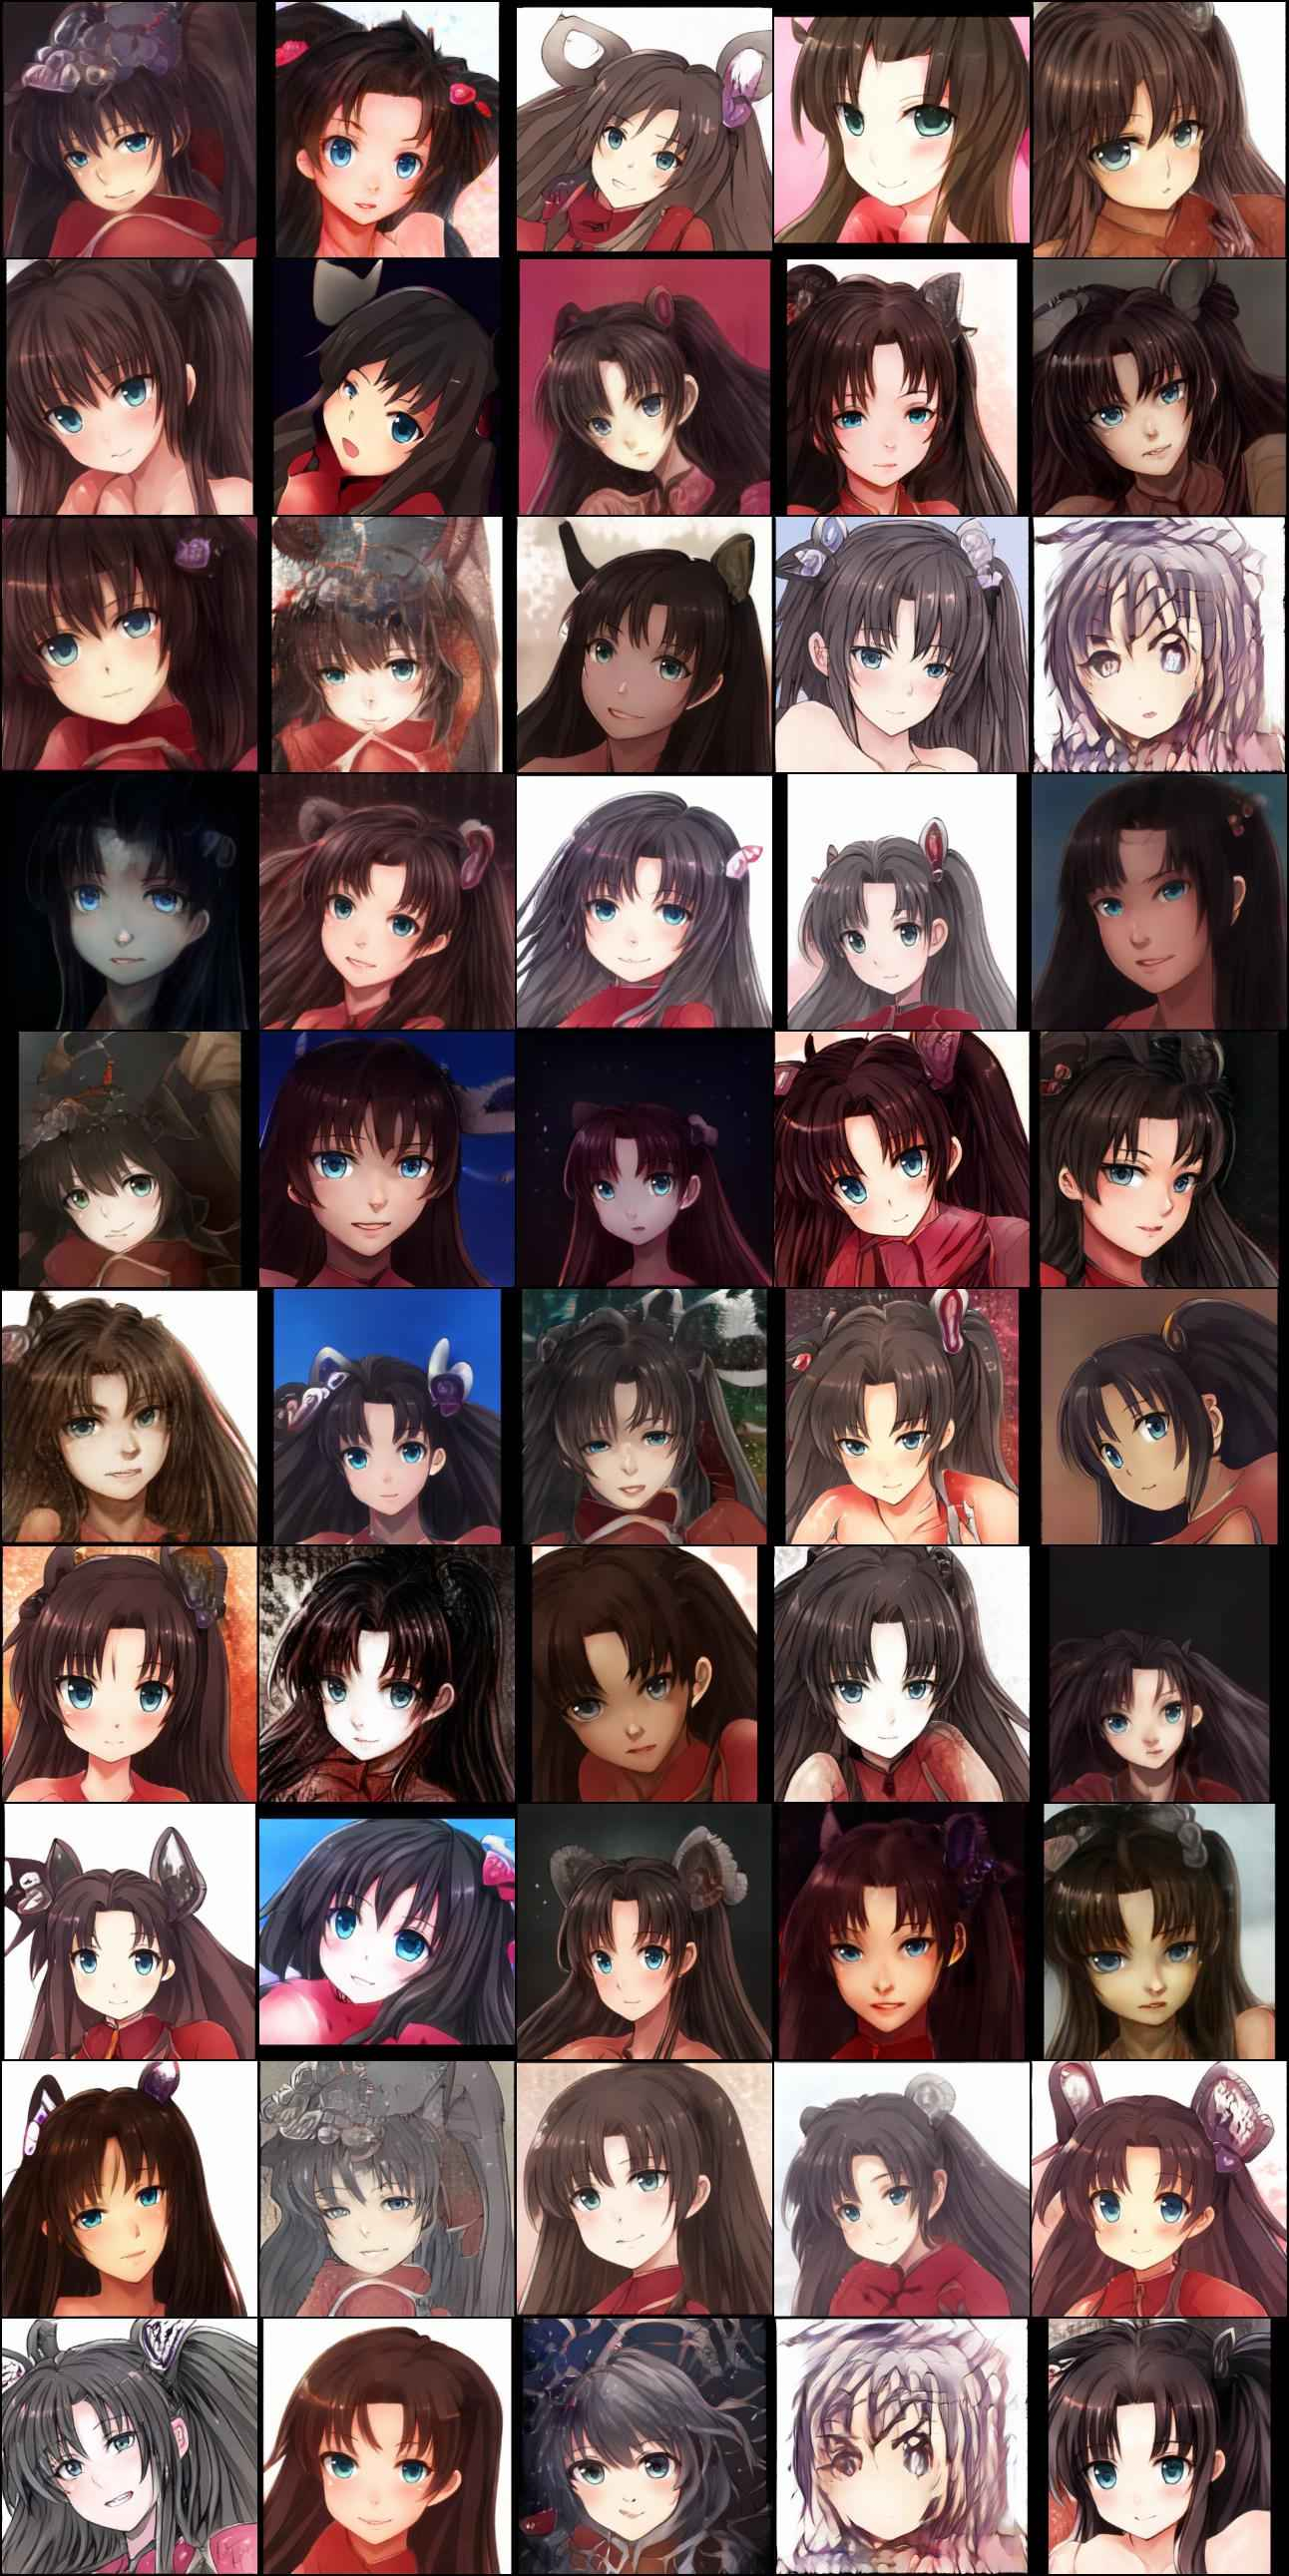 Rin Tohsaka (Fate/Stay Night), class #891